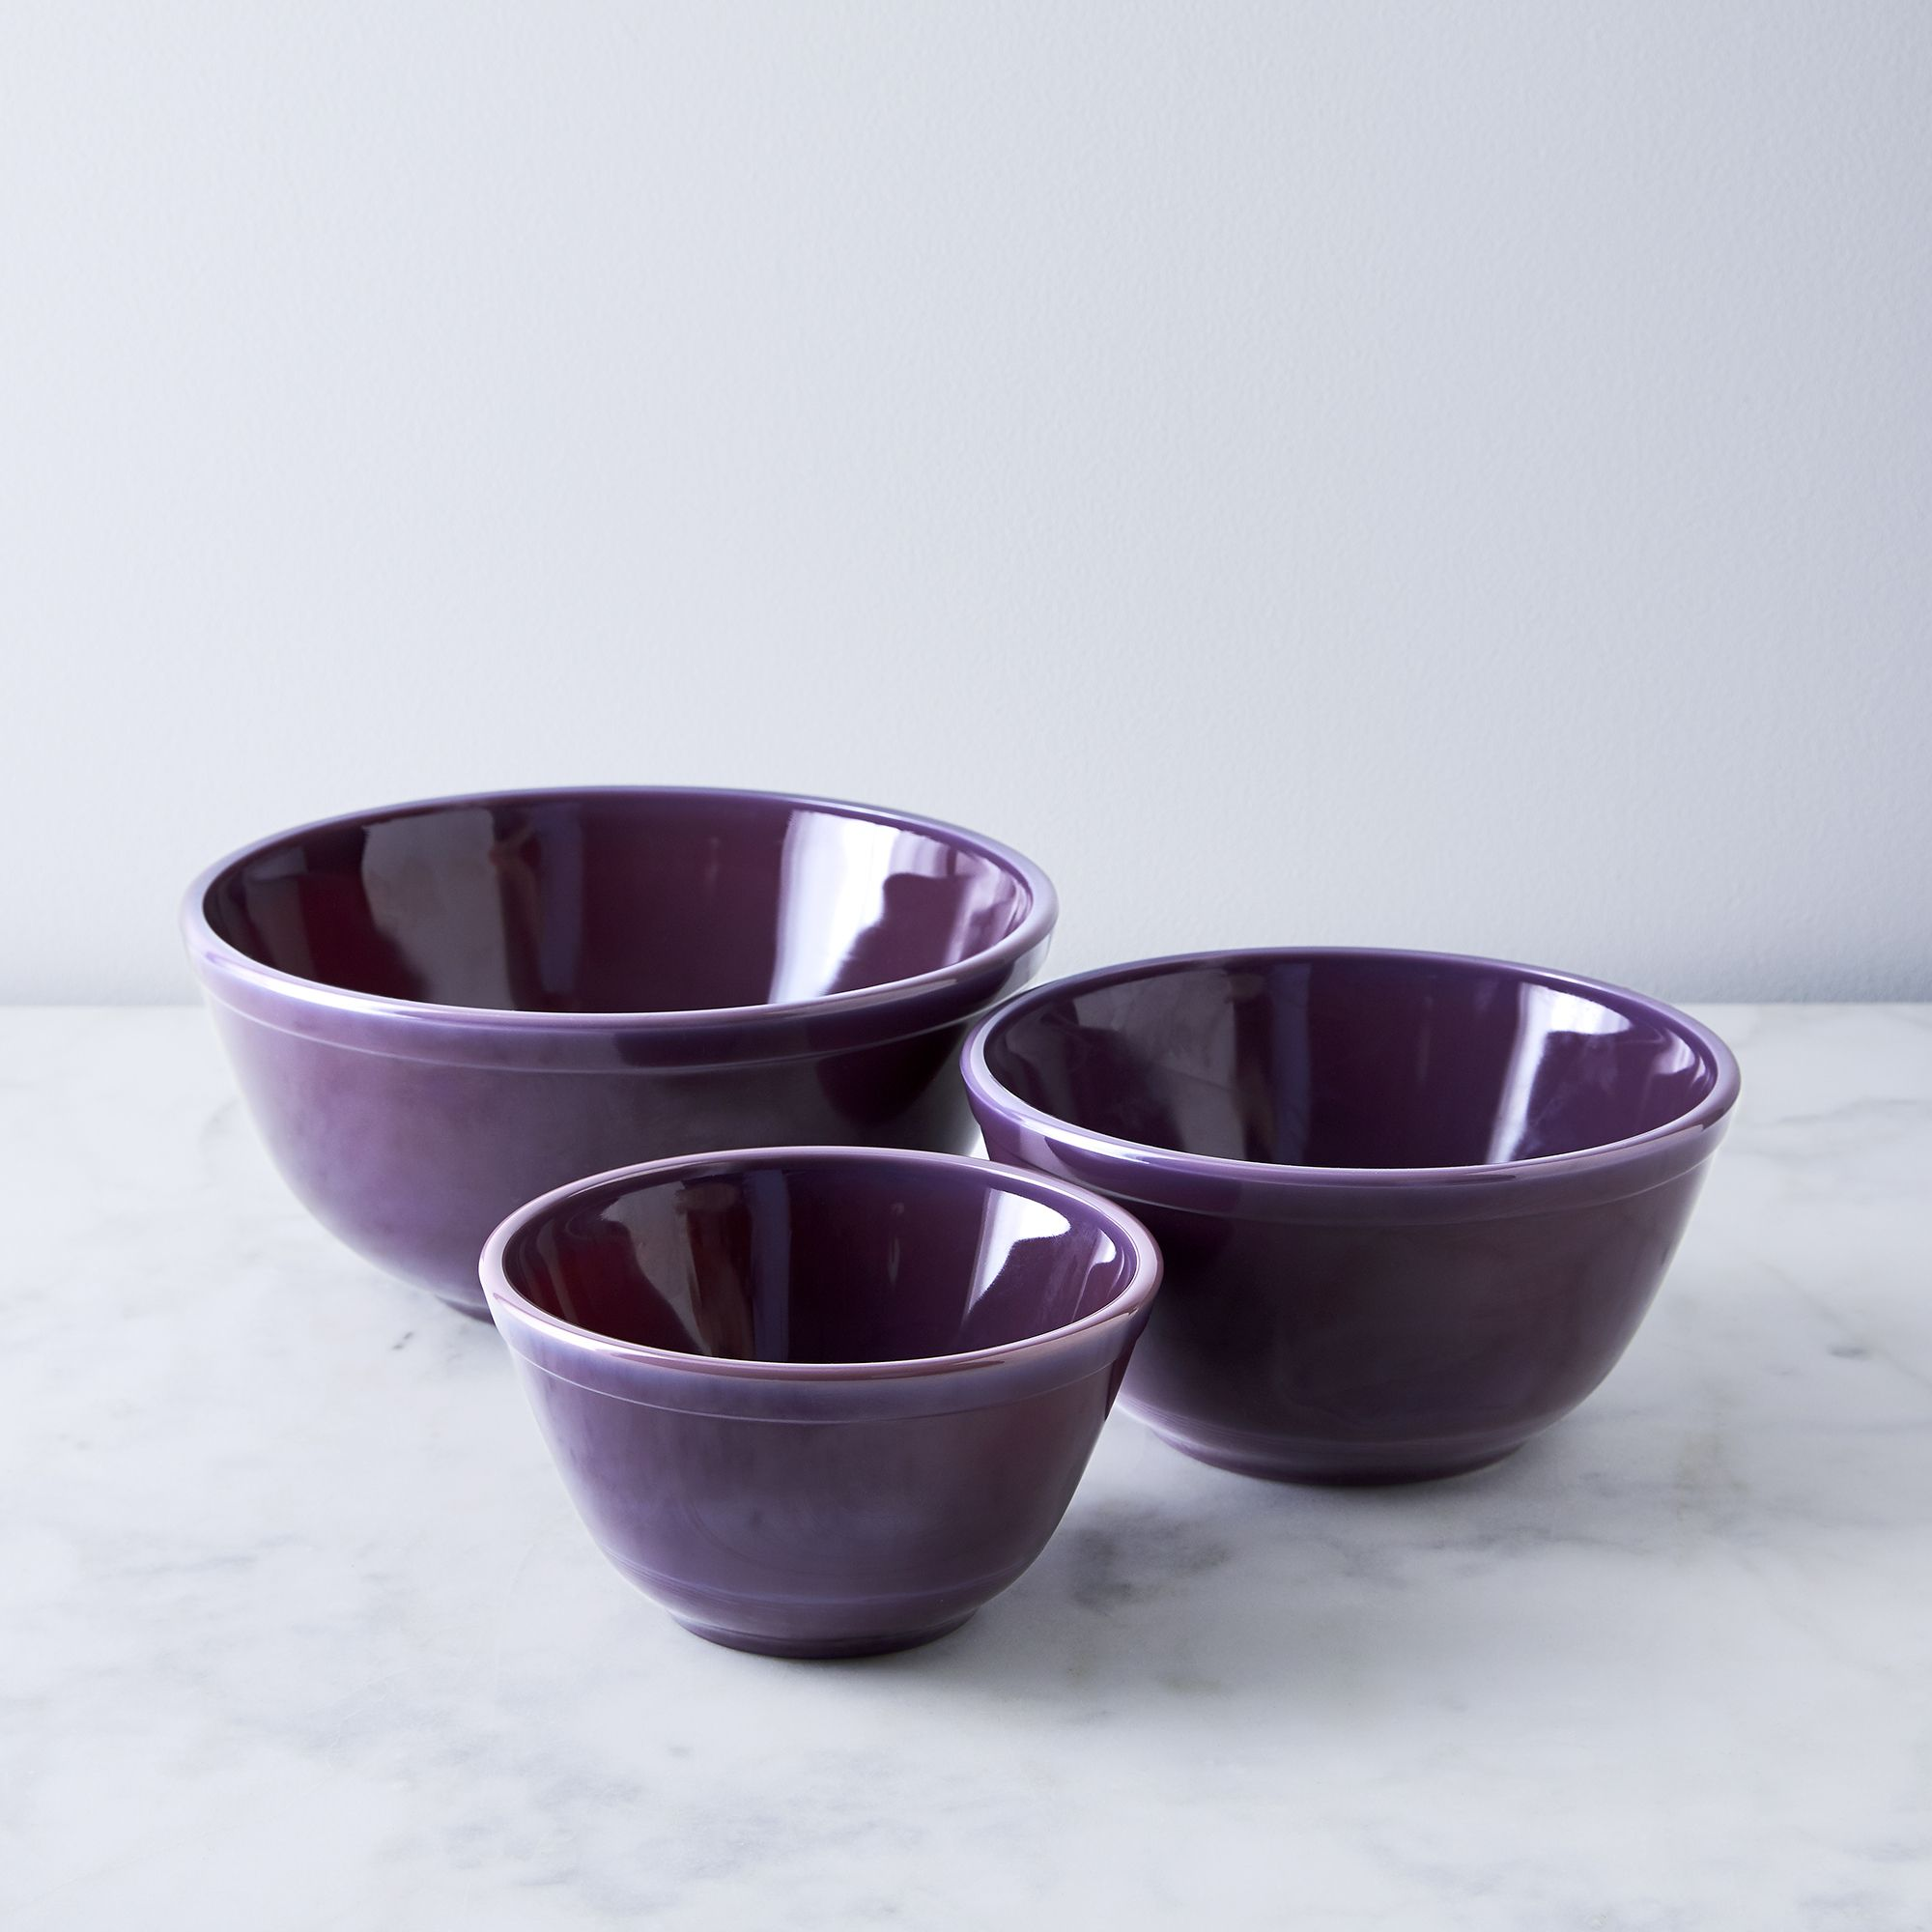 Cf8f0621 1304 4039 ad2d 8fbc8cc0b1b8  2018 0124 mosser glass purple glass 3 piece mixing bowl set silo ty mecham 011